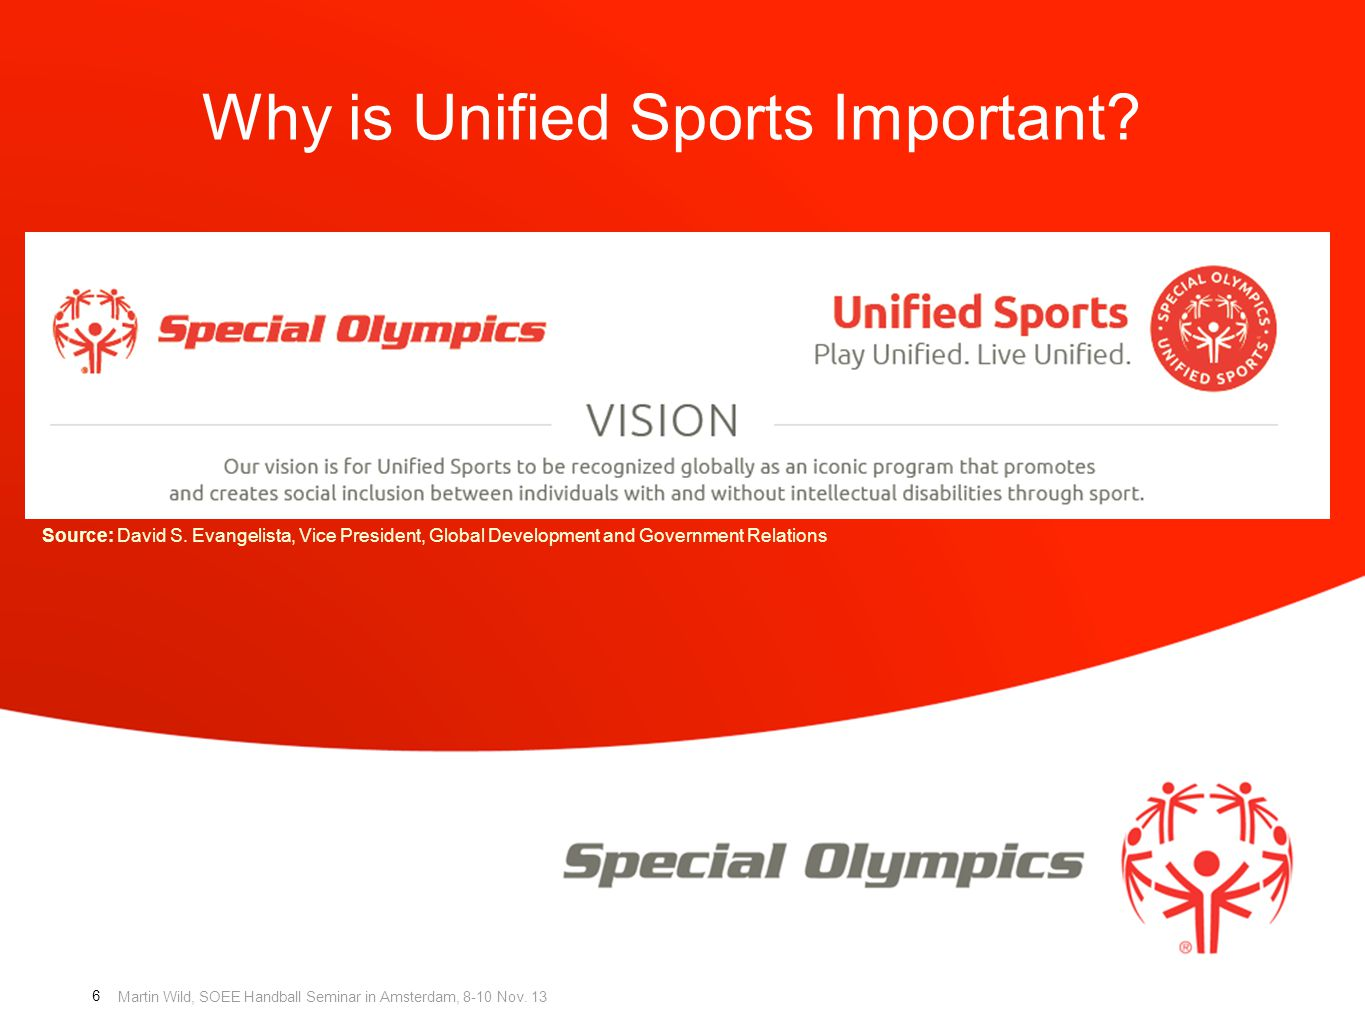 Martin Wild, SOEE Handball Seminar in Amsterdam, 8-10 Nov. 13 Why is Unified Sports Important? 6 Source: David S. Evangelista, Vice President, Global